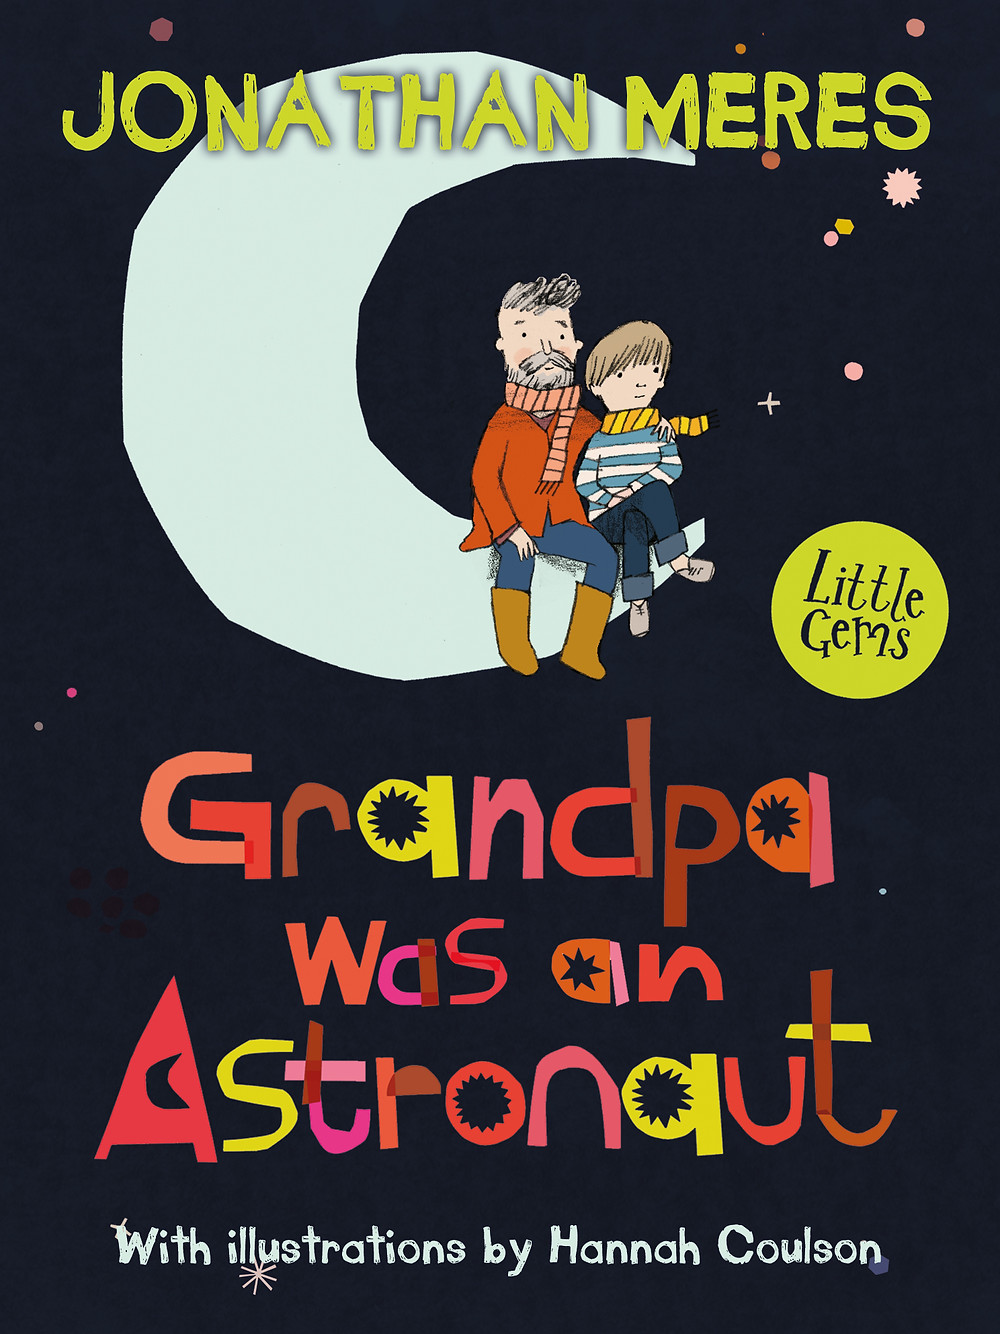 Grandpa was an Astronaut, a children's book about a young boy and his relationship with his grandpa, a former astronaut.